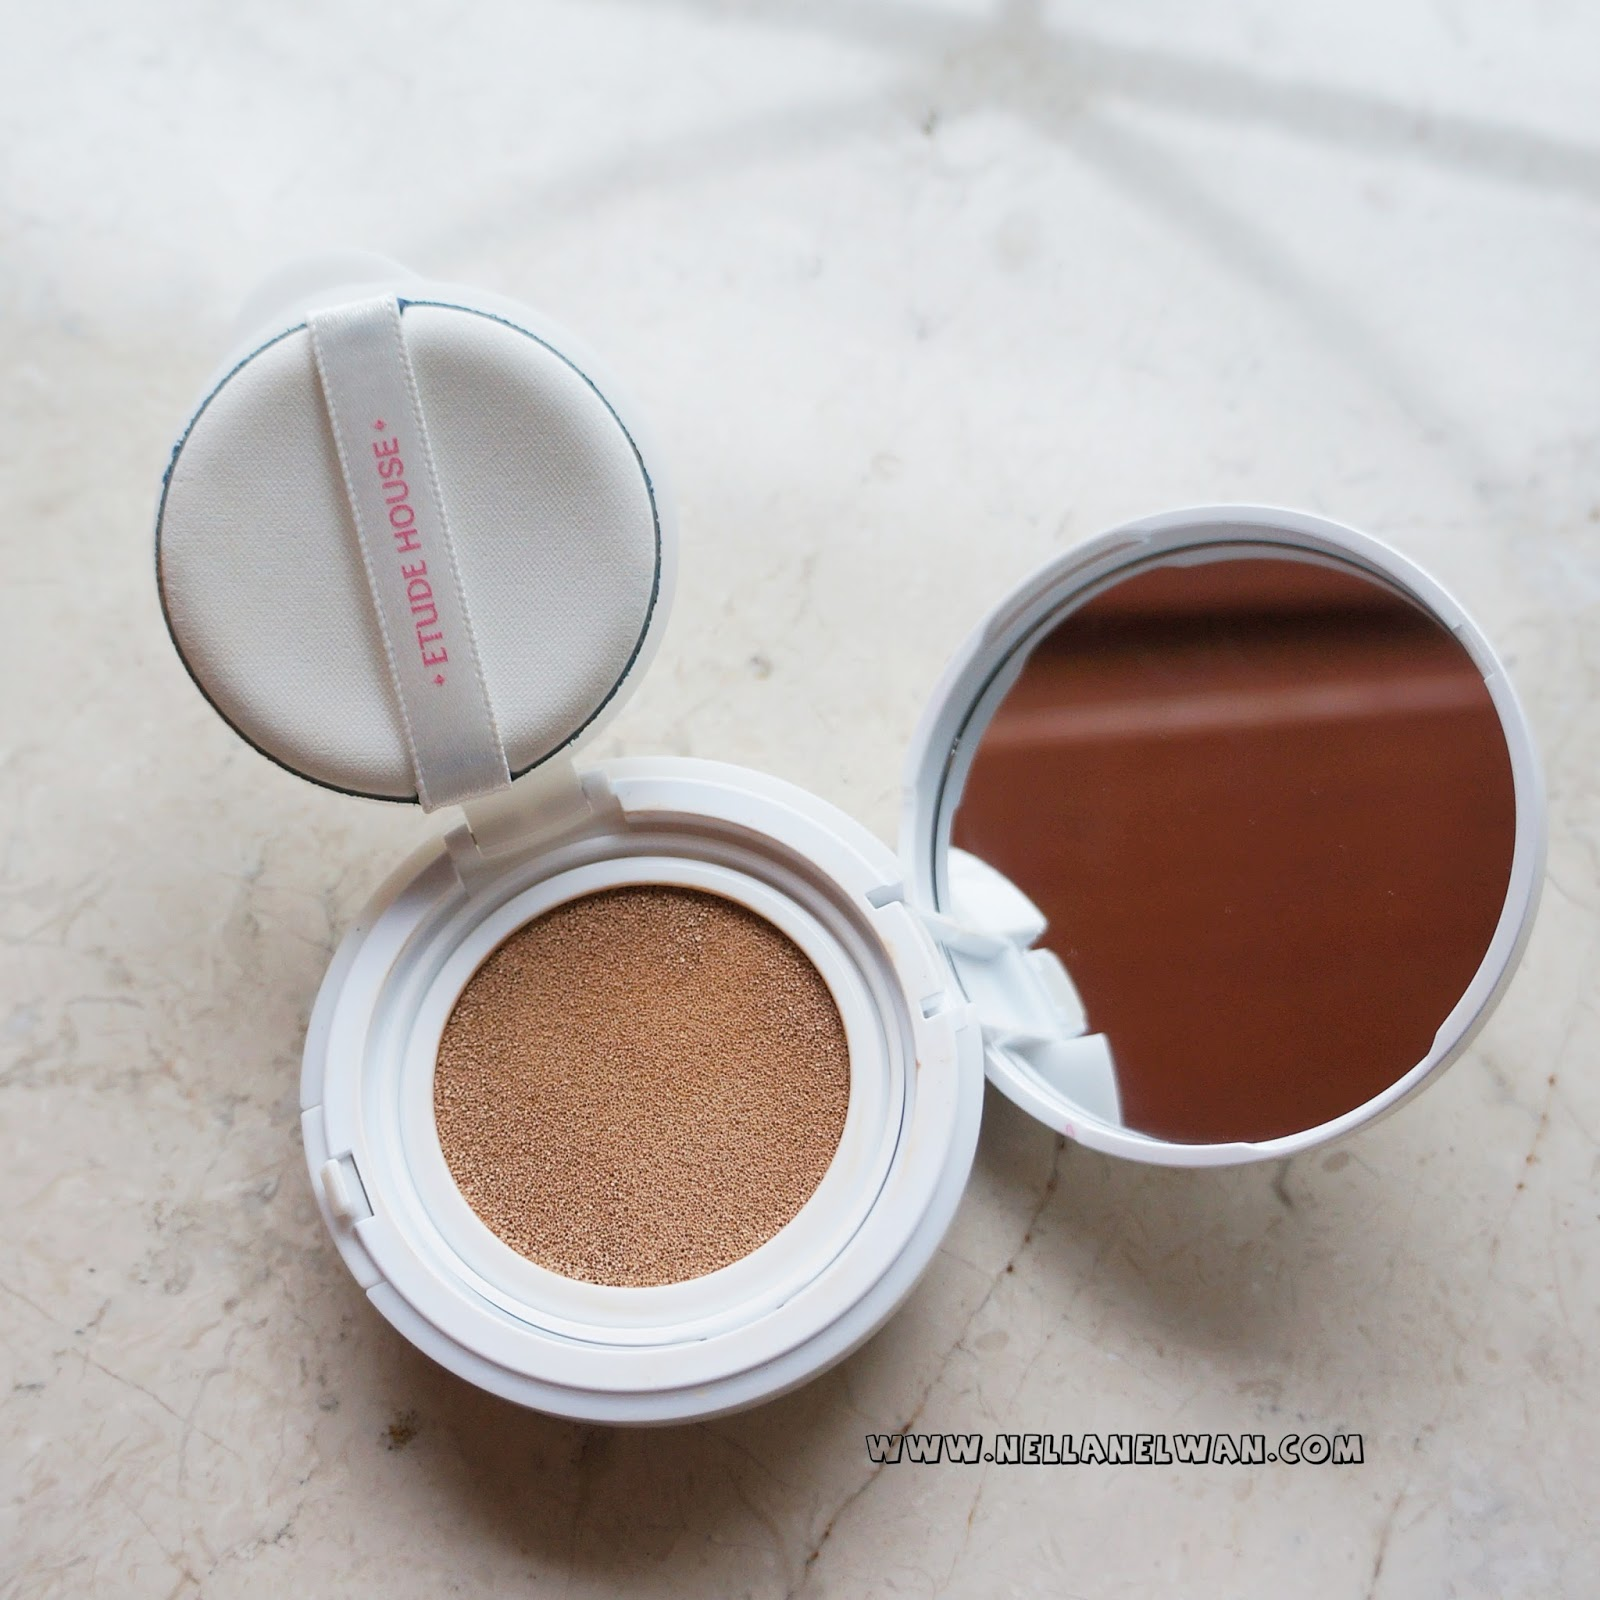 etude house precious mineral any cushion w13 natural beige review